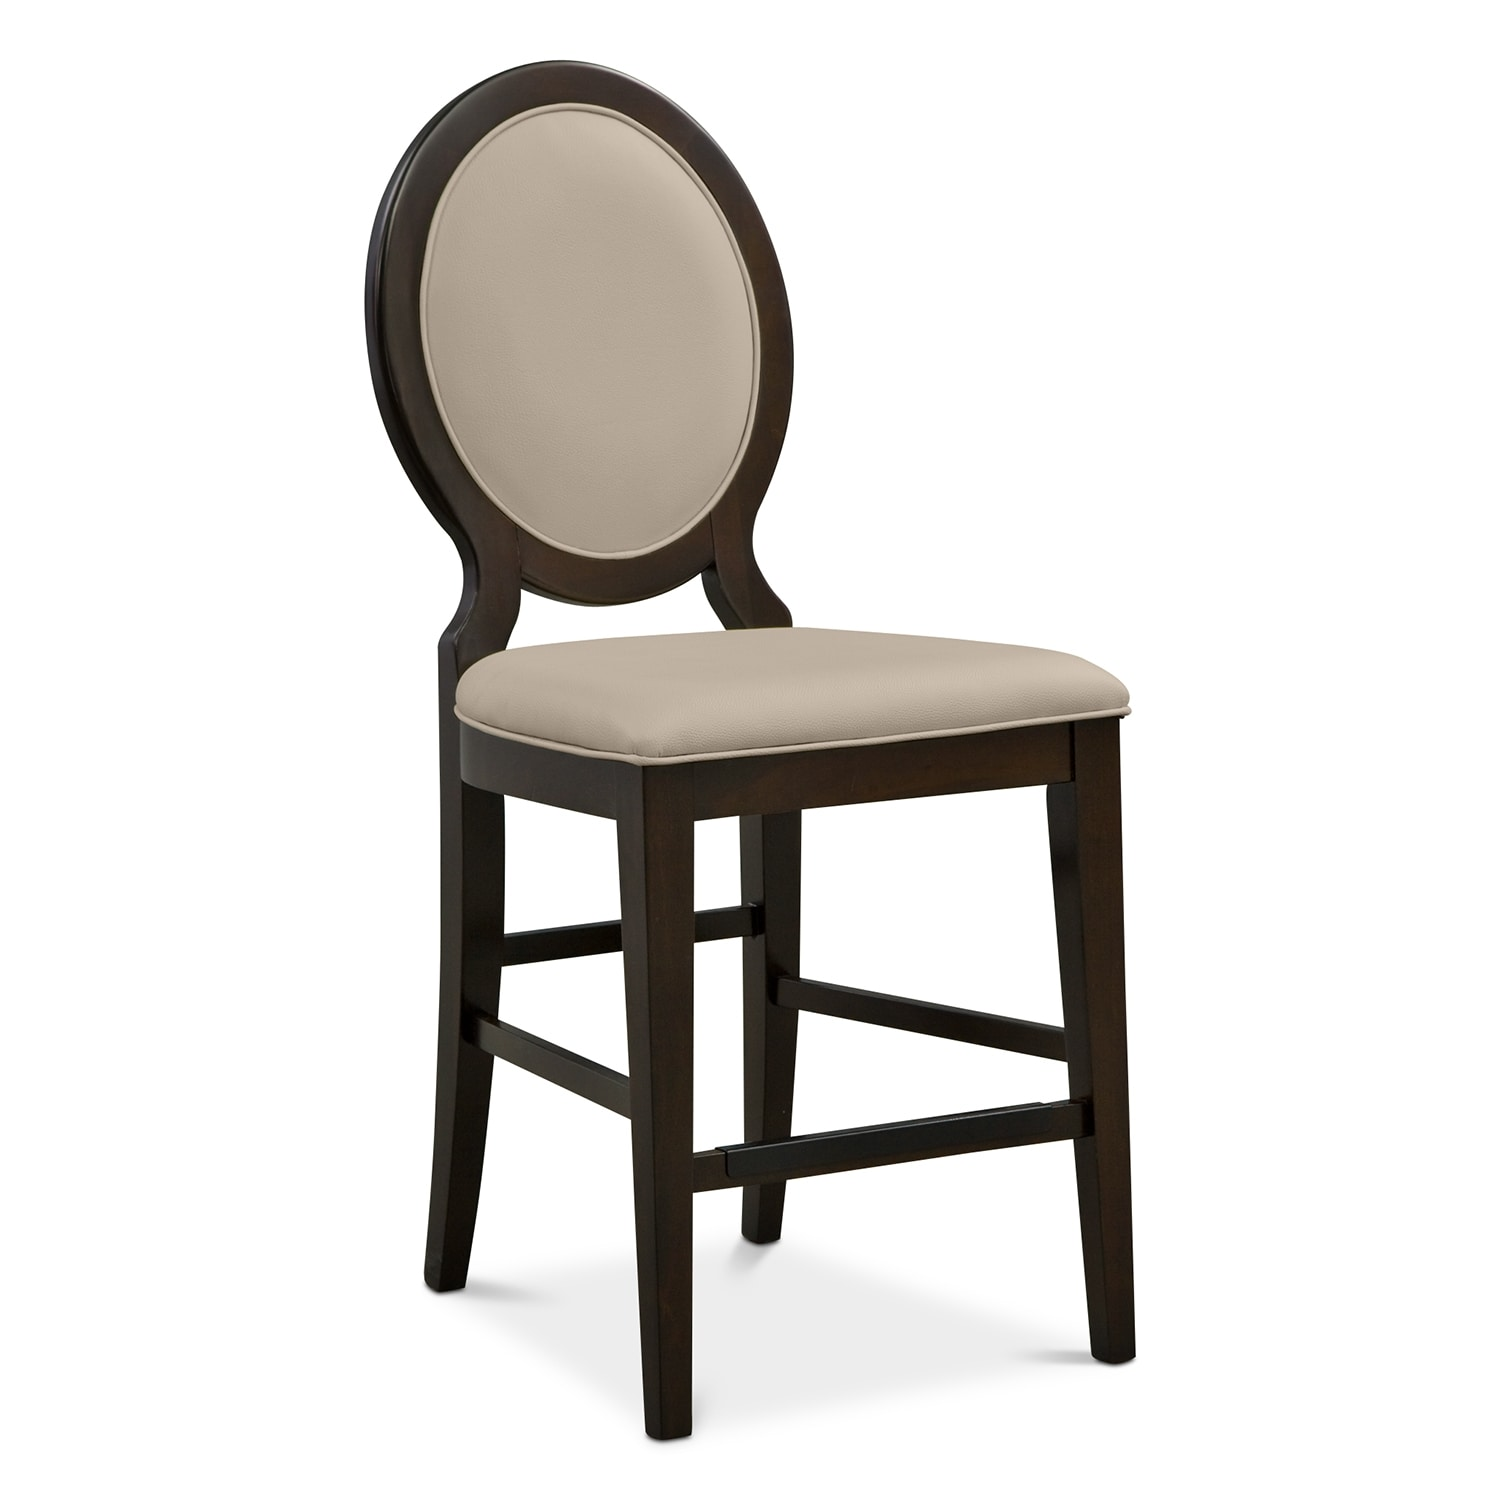 Dining Room Furniture - Cosmo II Counter-Height Stool